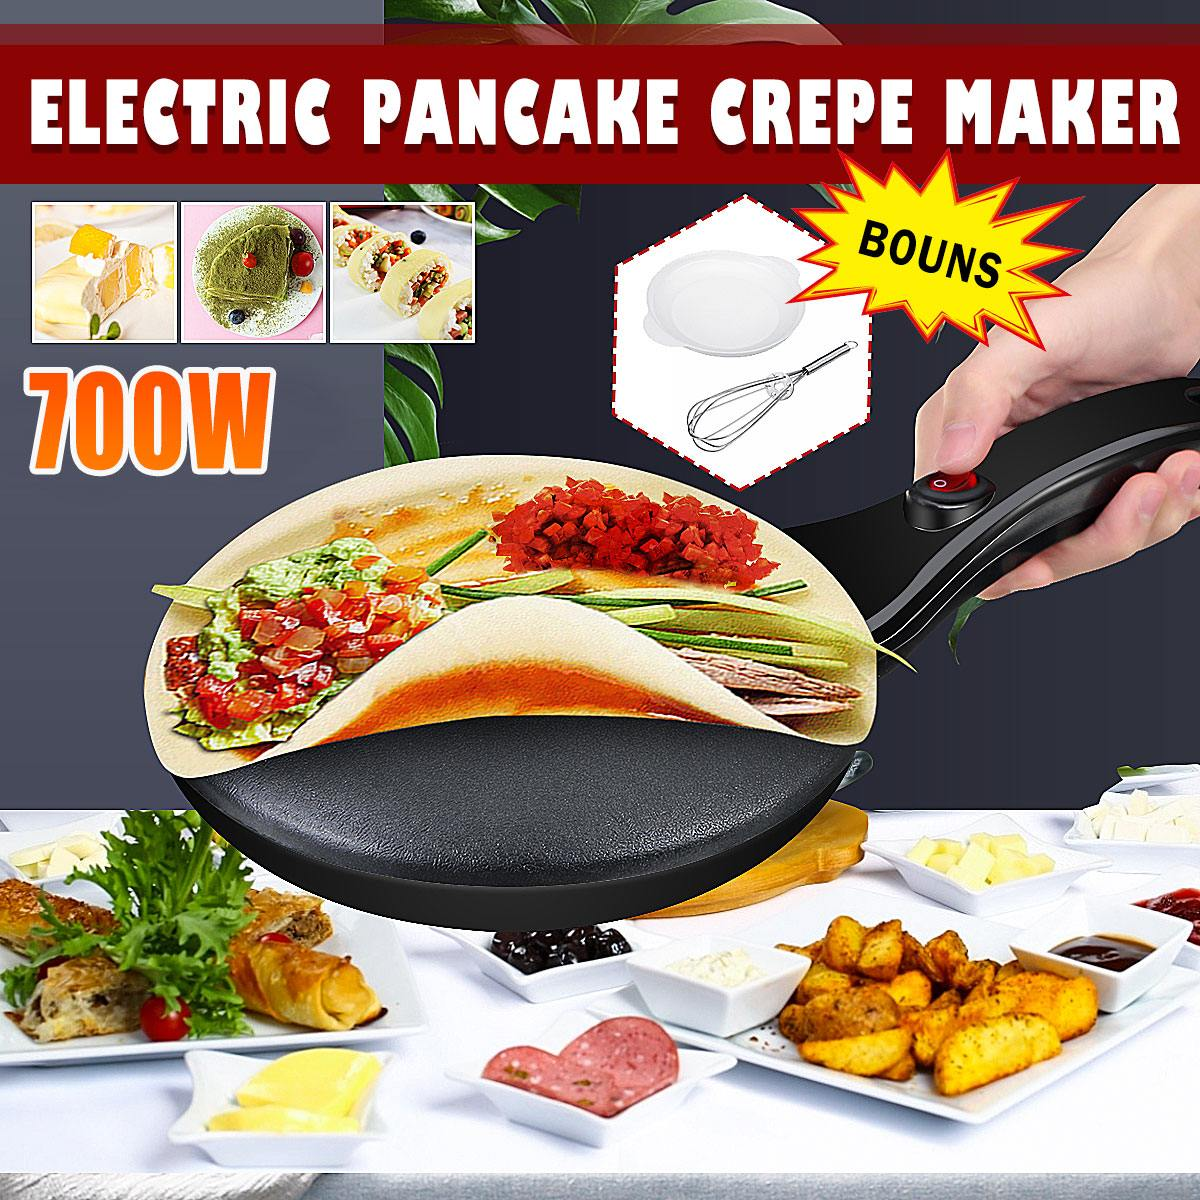 Portable Household Non-Stick Crepe Maker Pan Electric Pancake Cake 220V 700W Machine Frying Griddle Kitchen Baking Tools